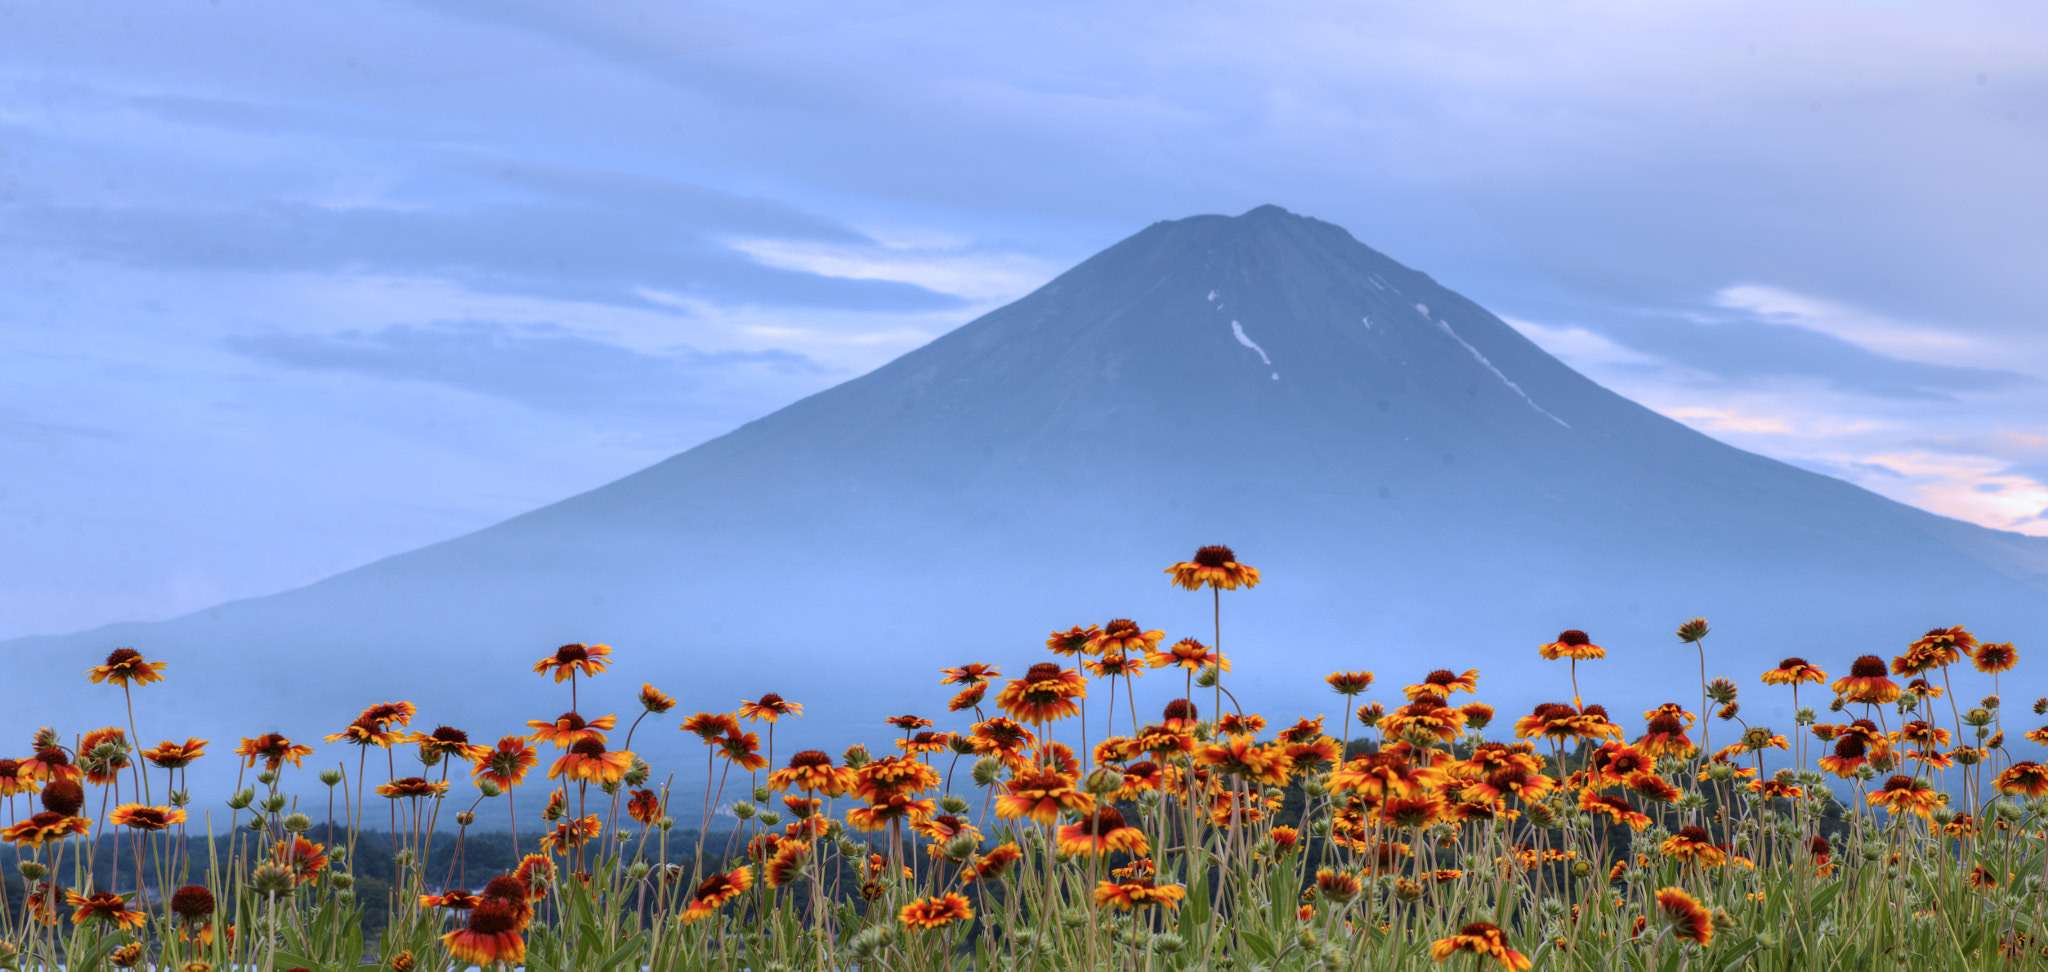 Photograph Flowers & Mt Fuji @ Sunset by hugh dornan on 500px